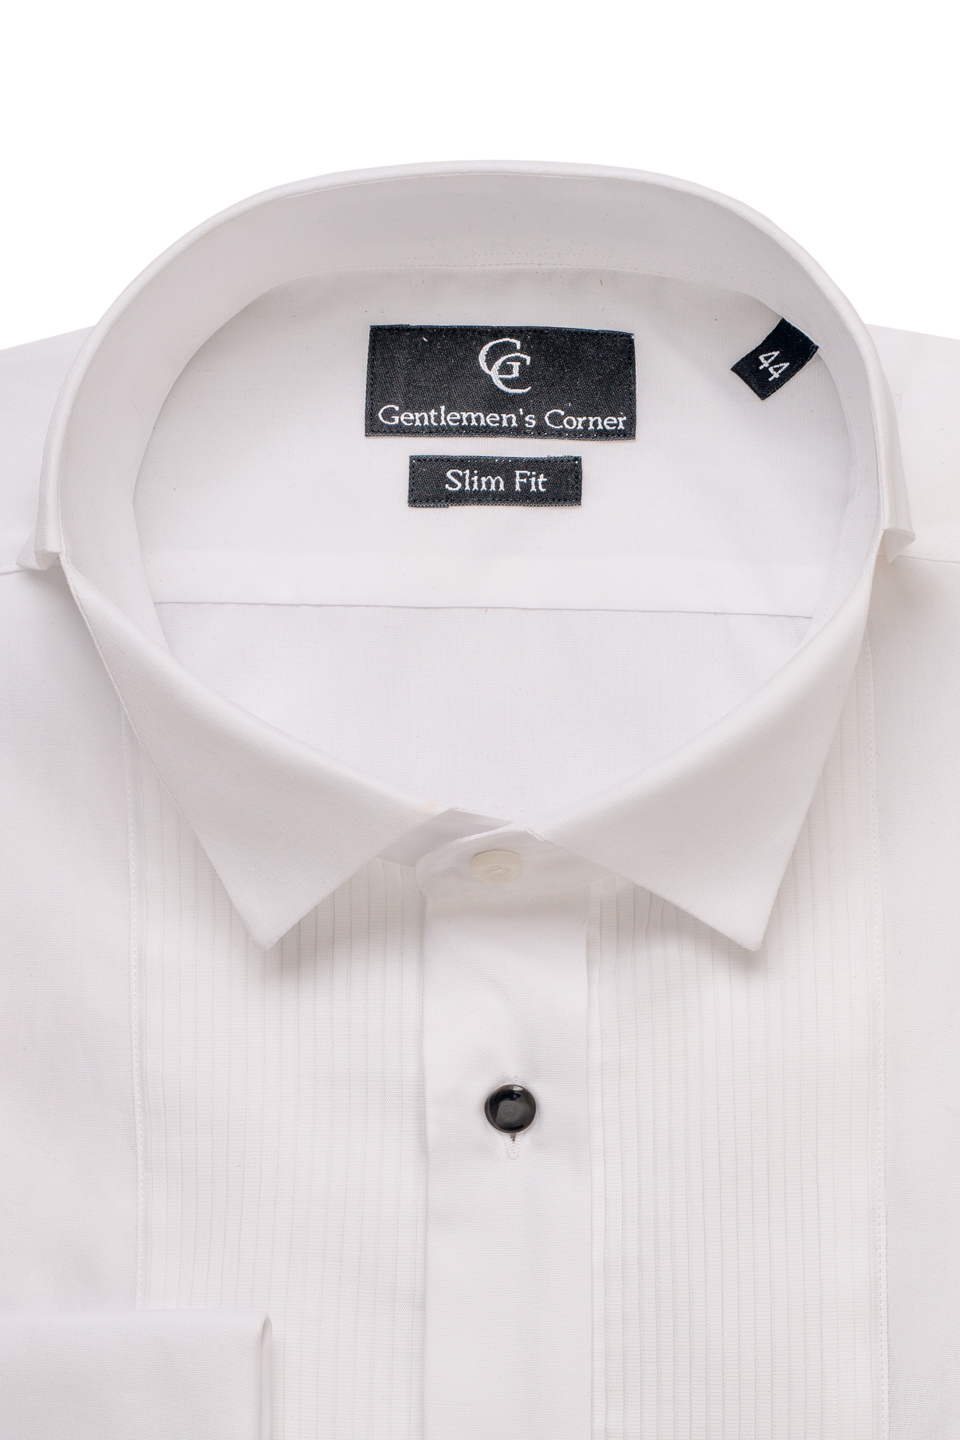 Webster White Dress Shirt - Collar